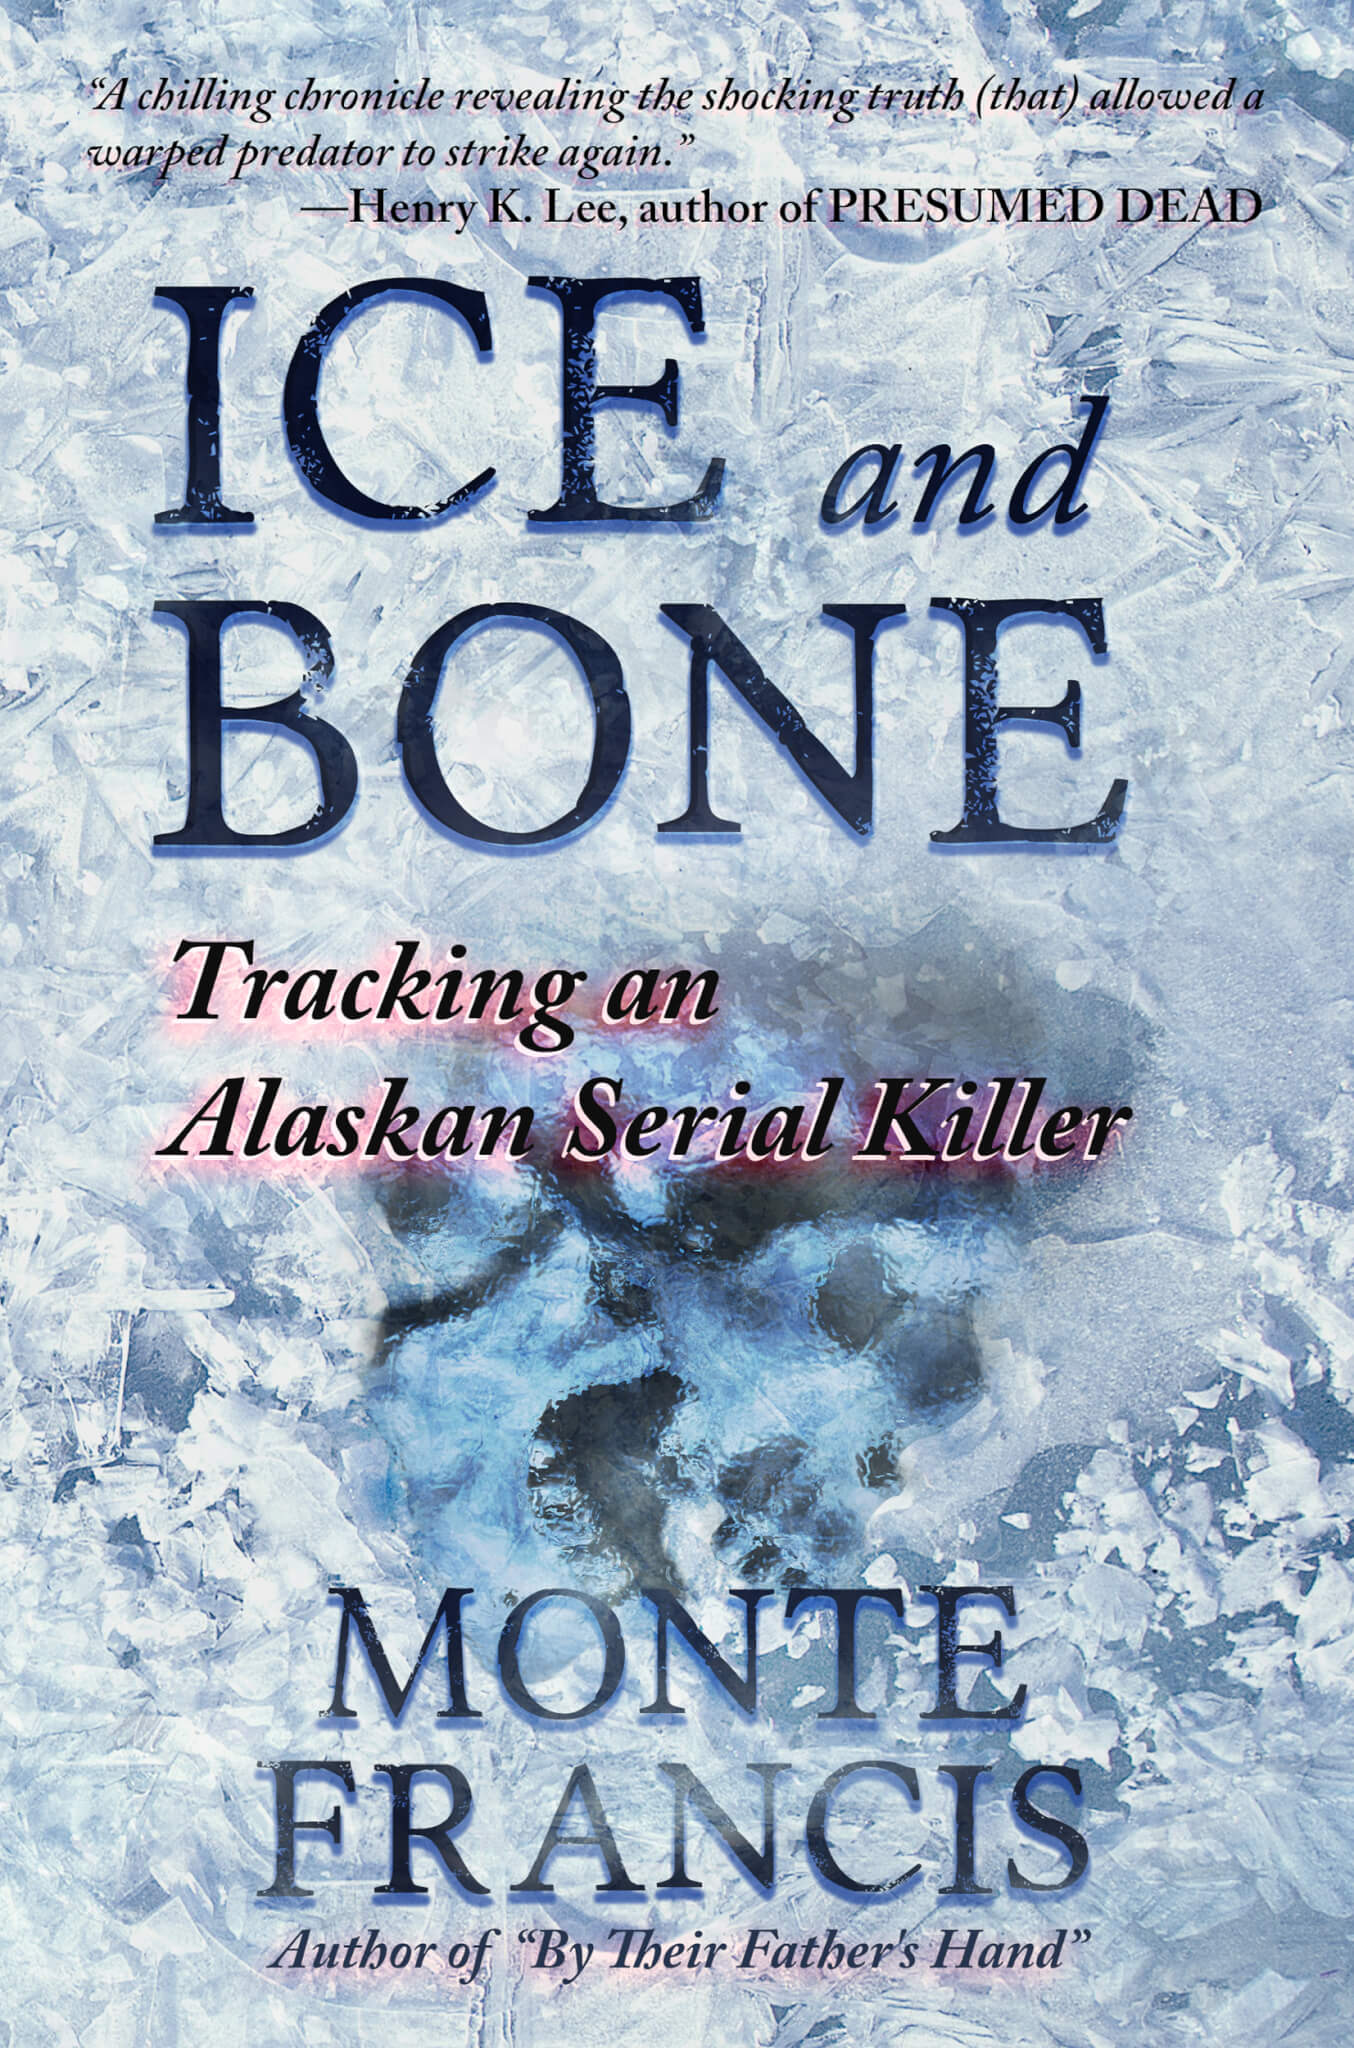 Audio books from wildblue press ice and bone tracking an alaskan serial killer audio books available fandeluxe